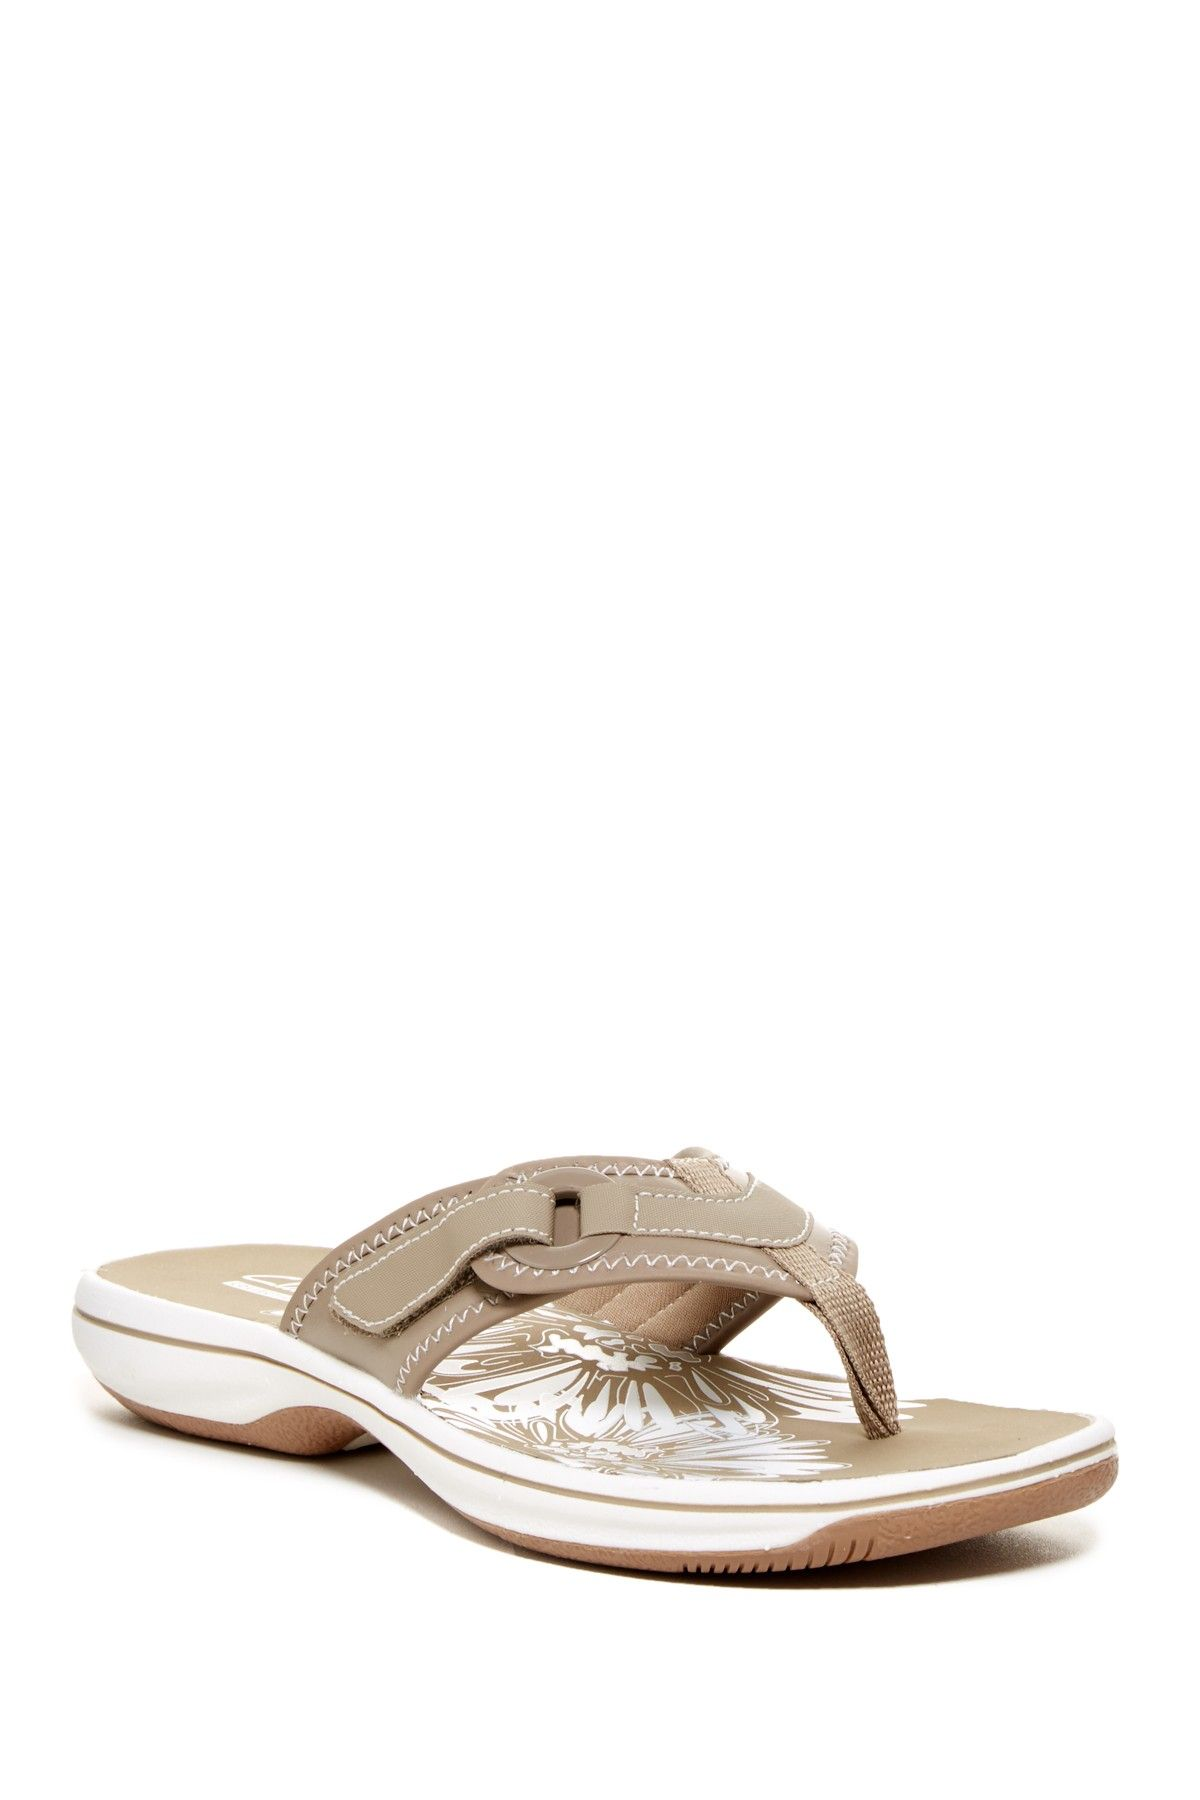 a9794b433747 Breeze Mila Flip Flop ~